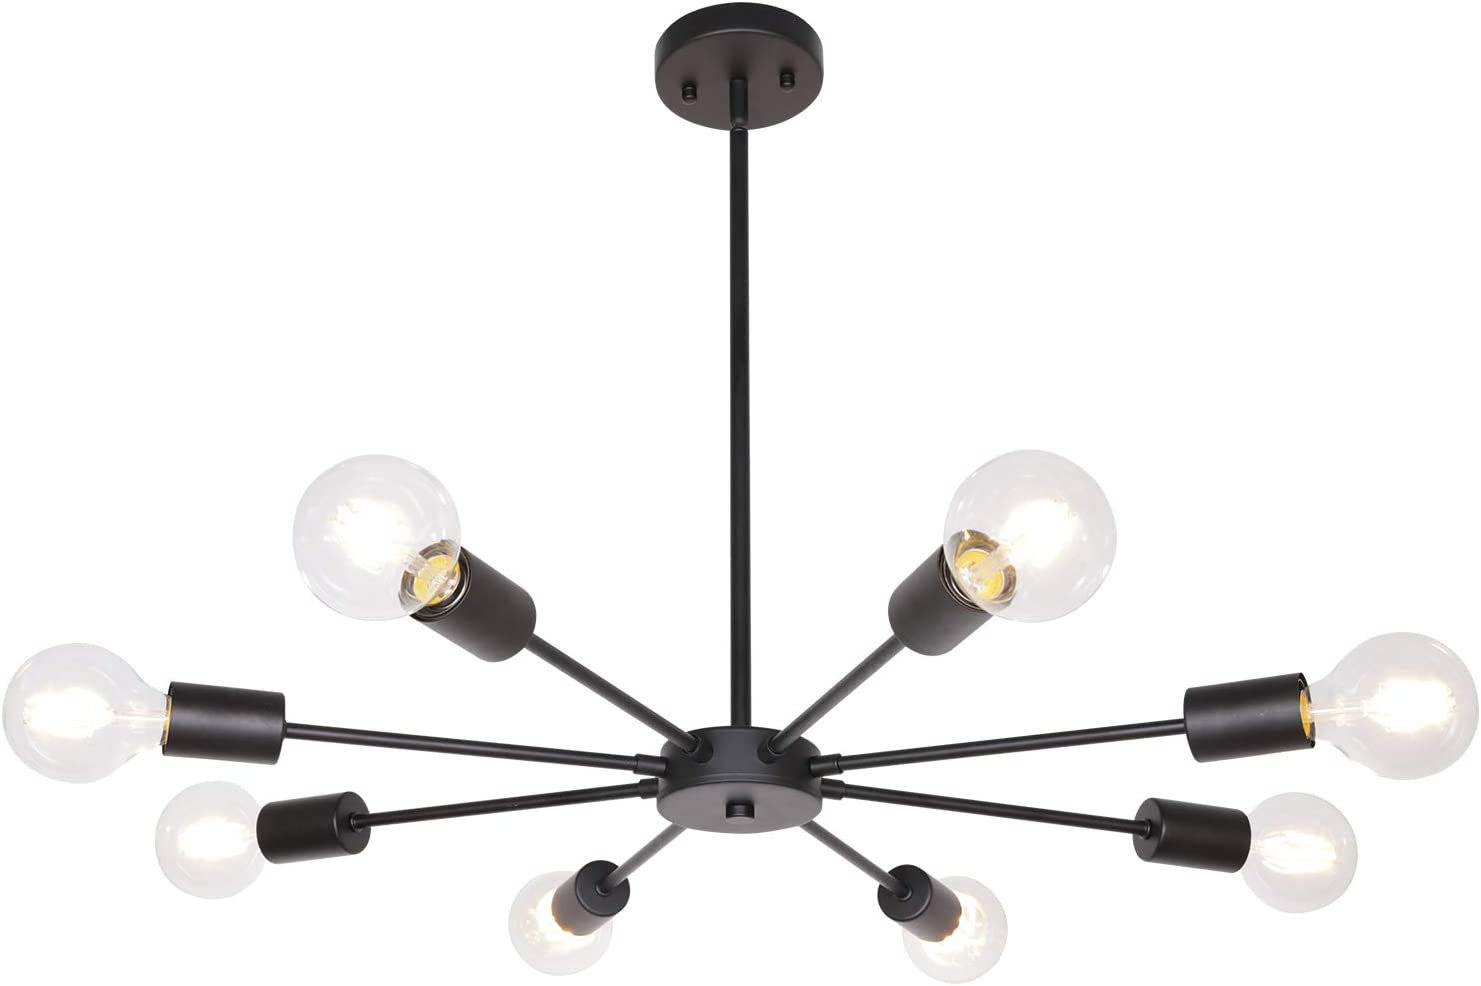 Sputnik Lights Black 8 Lights Mid Century Chandelier Modern Ceiling Light Metal Pendant Lighting for Kitchen Dining Room Bedroom UL Listed by MELUCEE